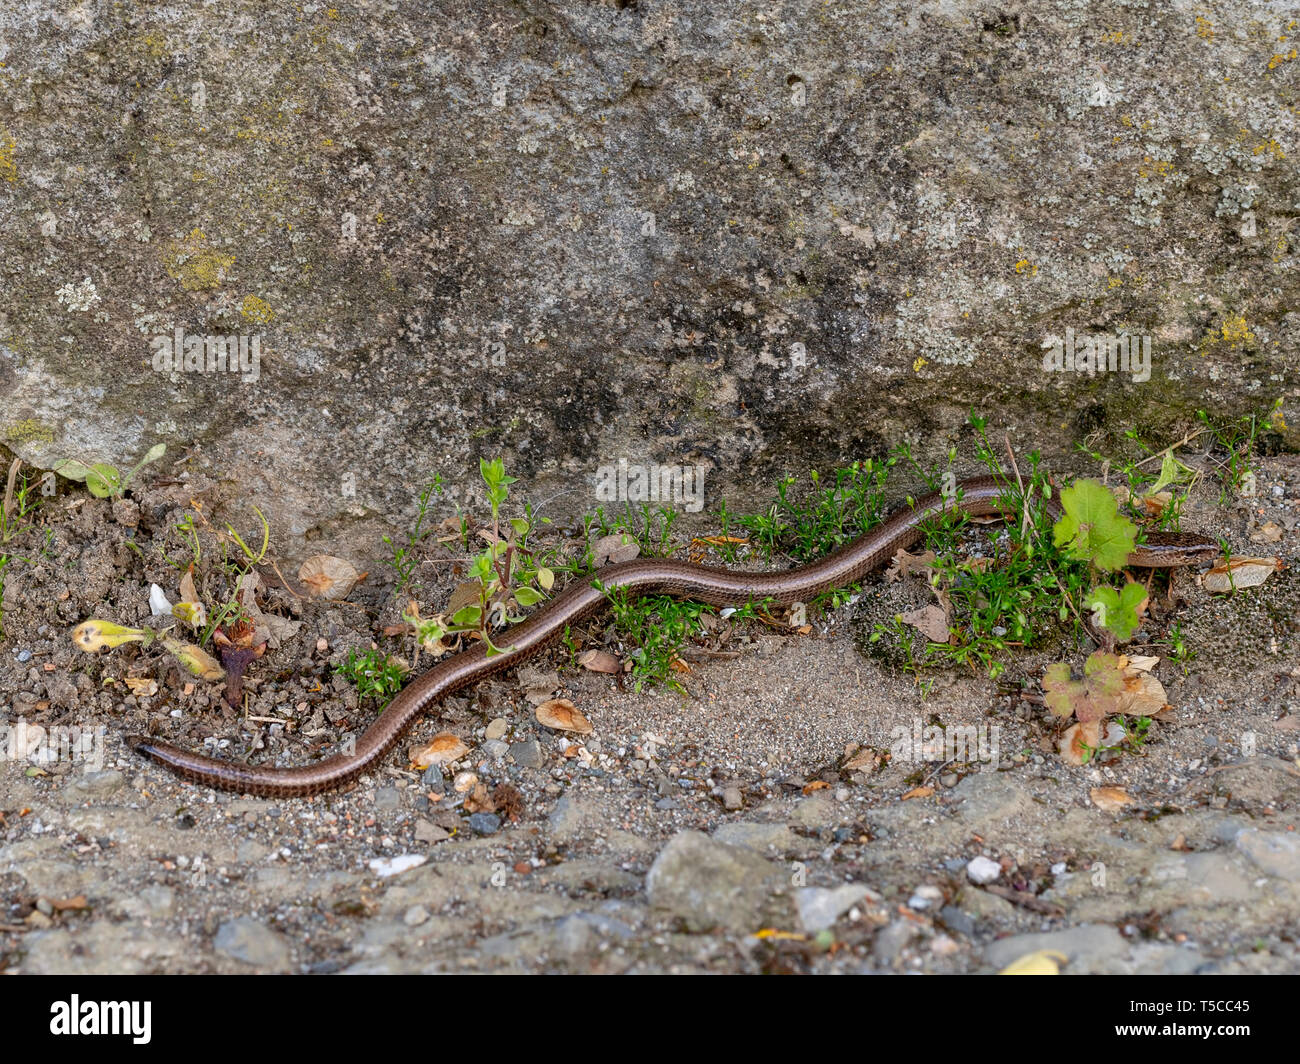 Slowworm aka slow worm or blindworm, Anguis fragilis, by wall. A reptile native to Eurasia. Aka deaf adder. Stock Photo